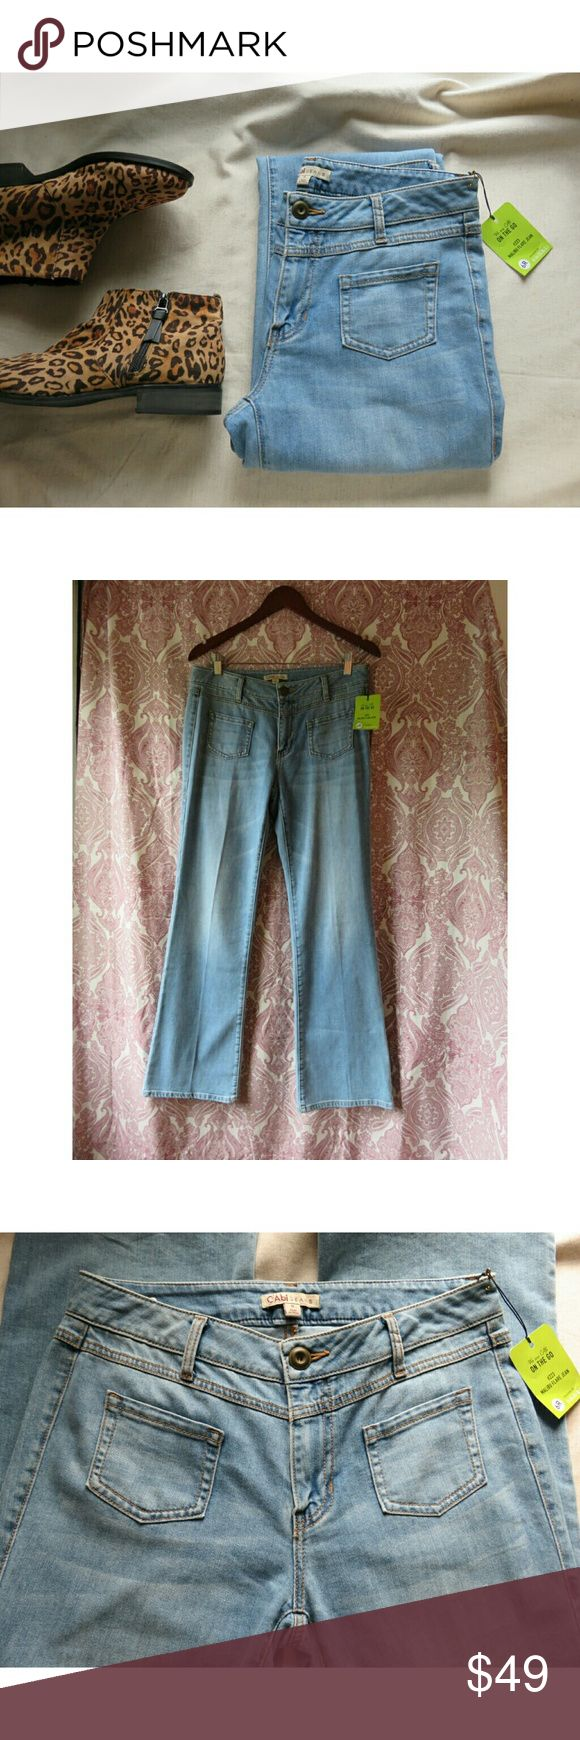 """NWT CAbi Malibu Retro 70's Flare Jeans Denim 6 New with tags and never worn from CAbi! Fun retro super flare light wash jeans, throwback from the 70's. Flat pockets at hips, 2 back pockets. Awesome stretch 84% Cotton/ 14% Elastane. Style 223R, size Ladies 6 Regular. Measures lying flat 15.5"""" across waist, 9.25"""" rise, about 20"""" across hips, and 31"""" inseam. Thanks so much! --Jen  #741 [Booties sold separately] CAbi Jeans Flare & Wide Leg"""